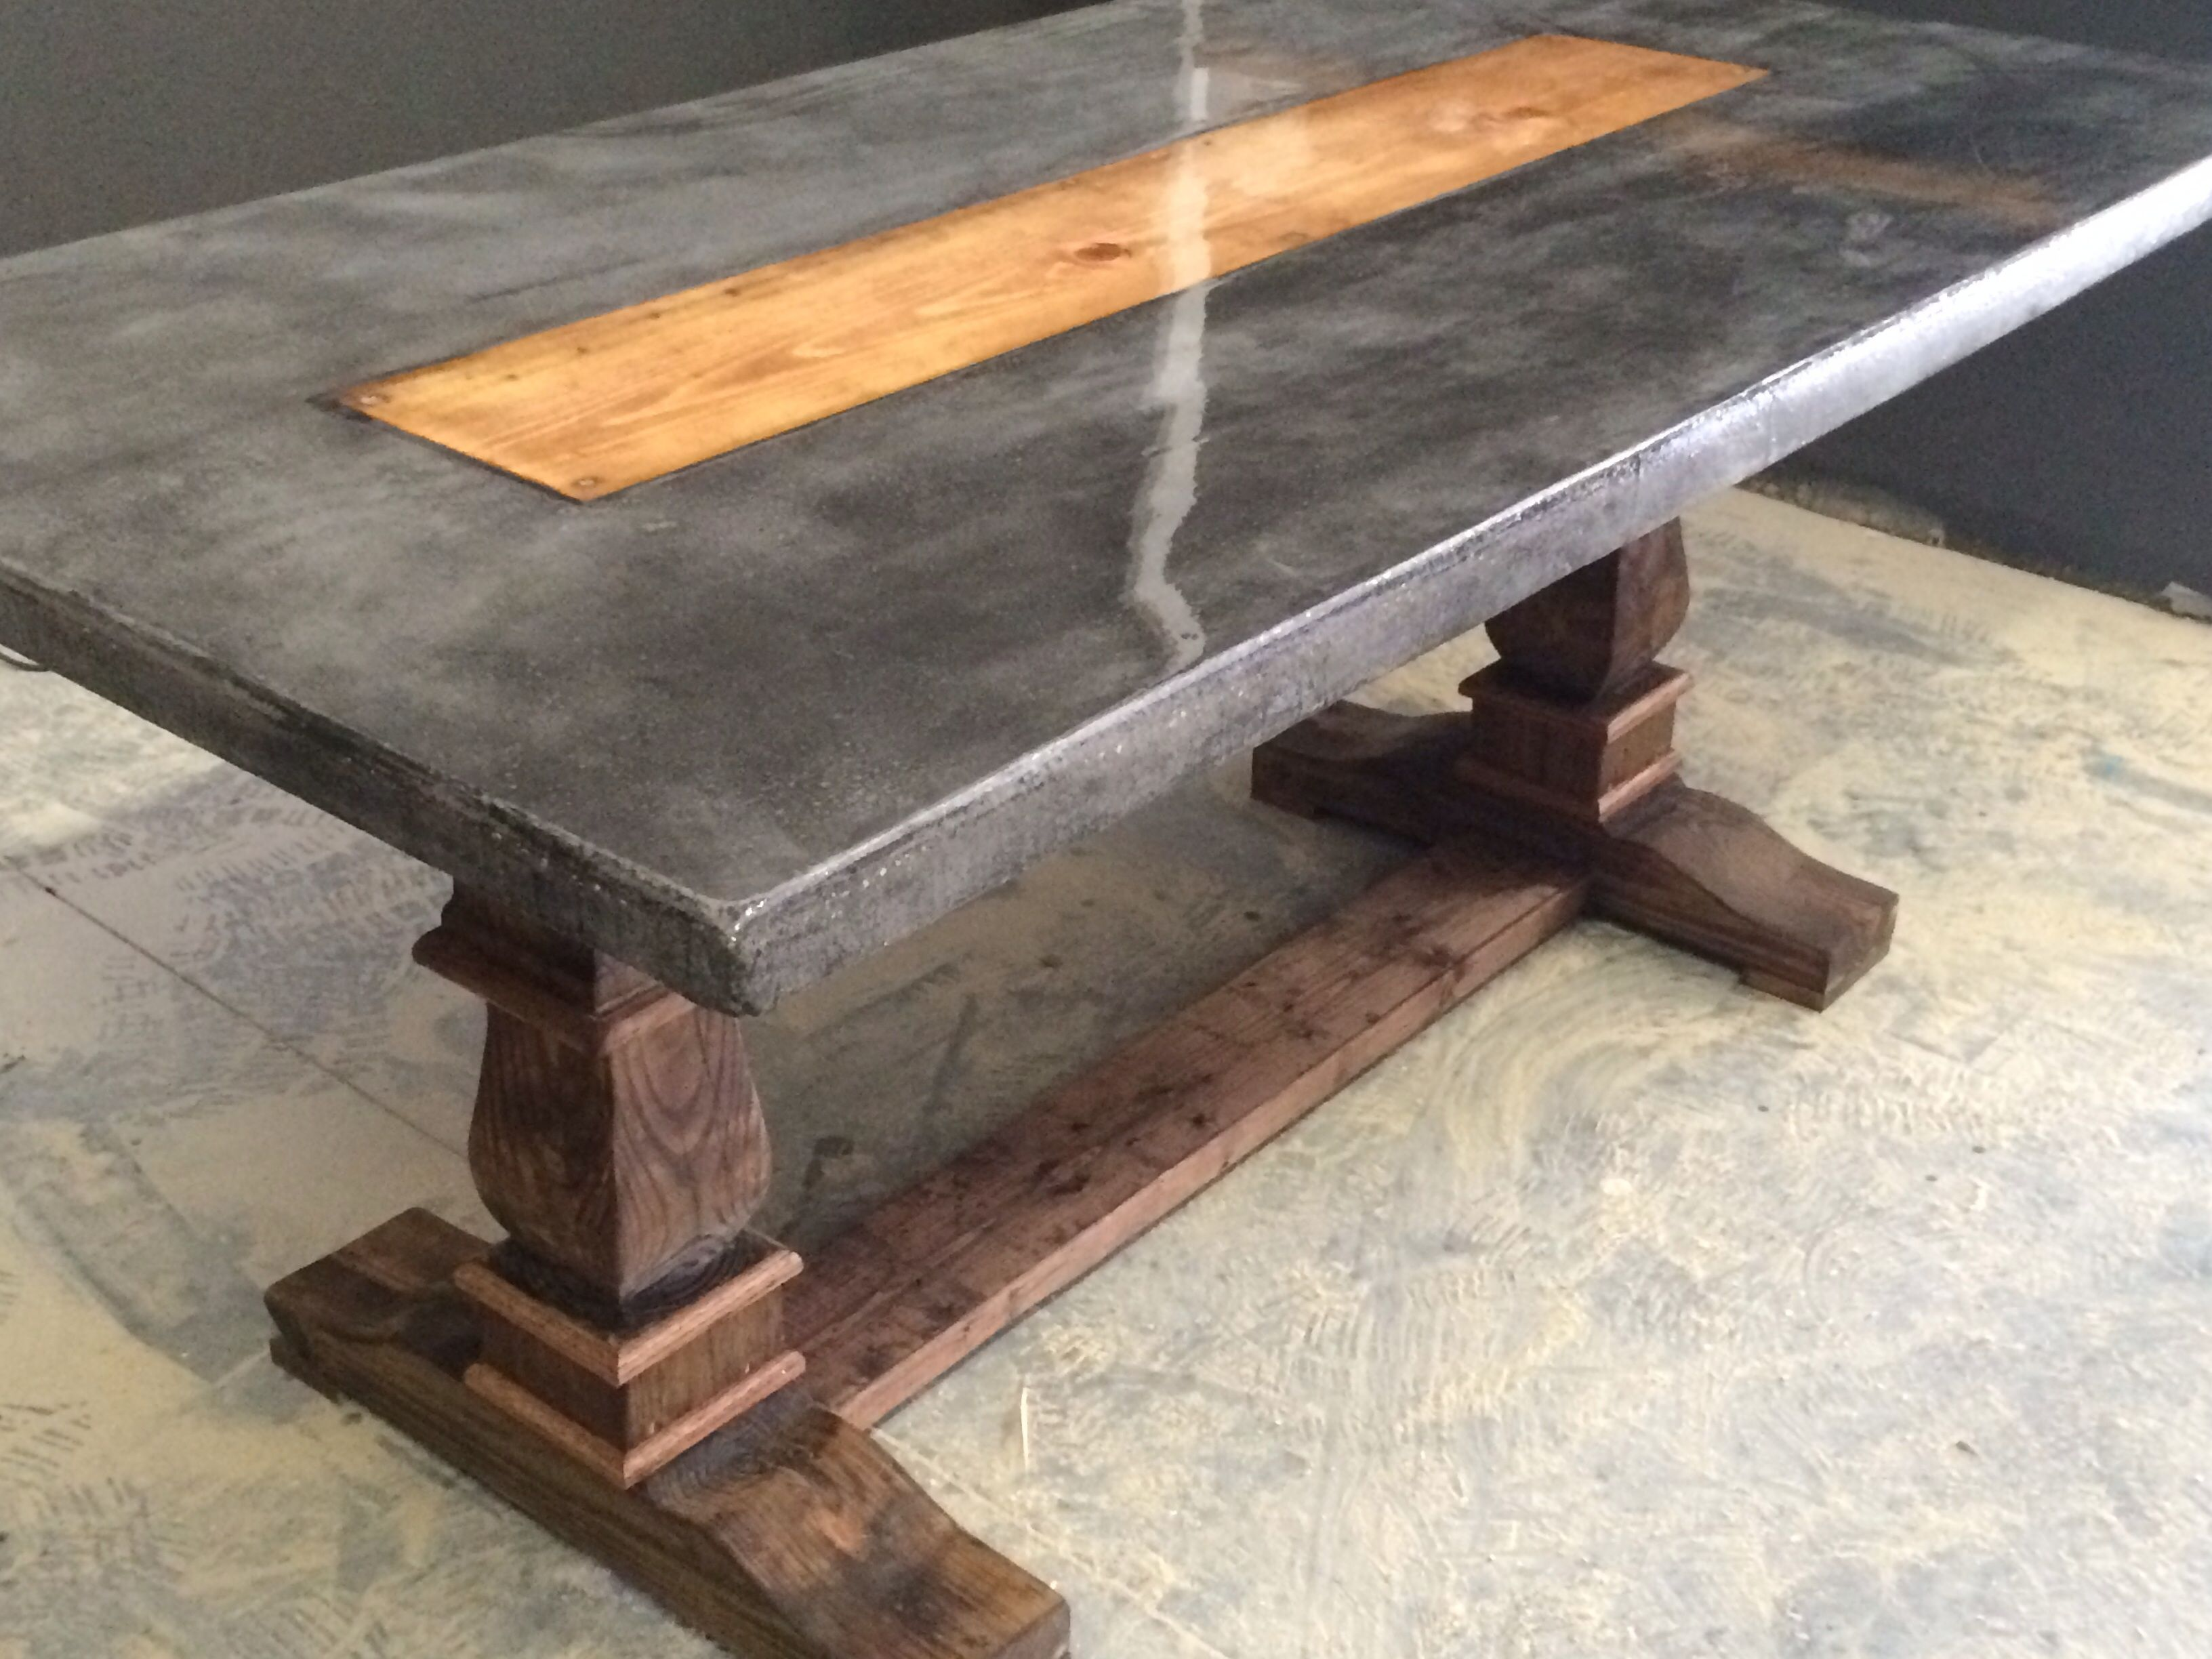 Concrete Table Top Regular Concrete With Dark Dye Added And A Wooden Inlay